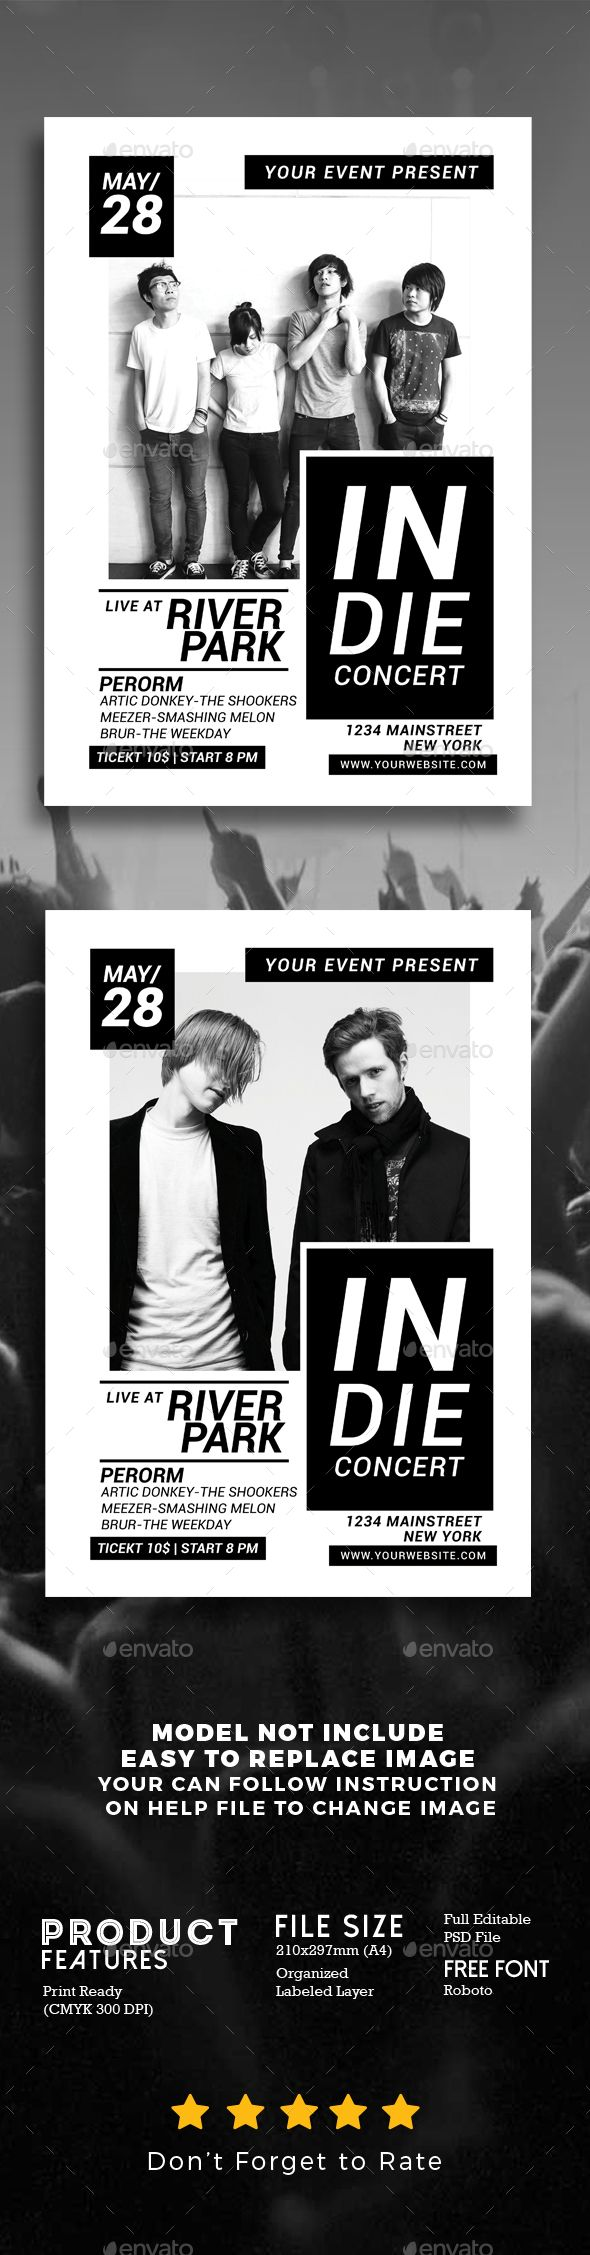 Indie Music Concert Flyer Template PSD